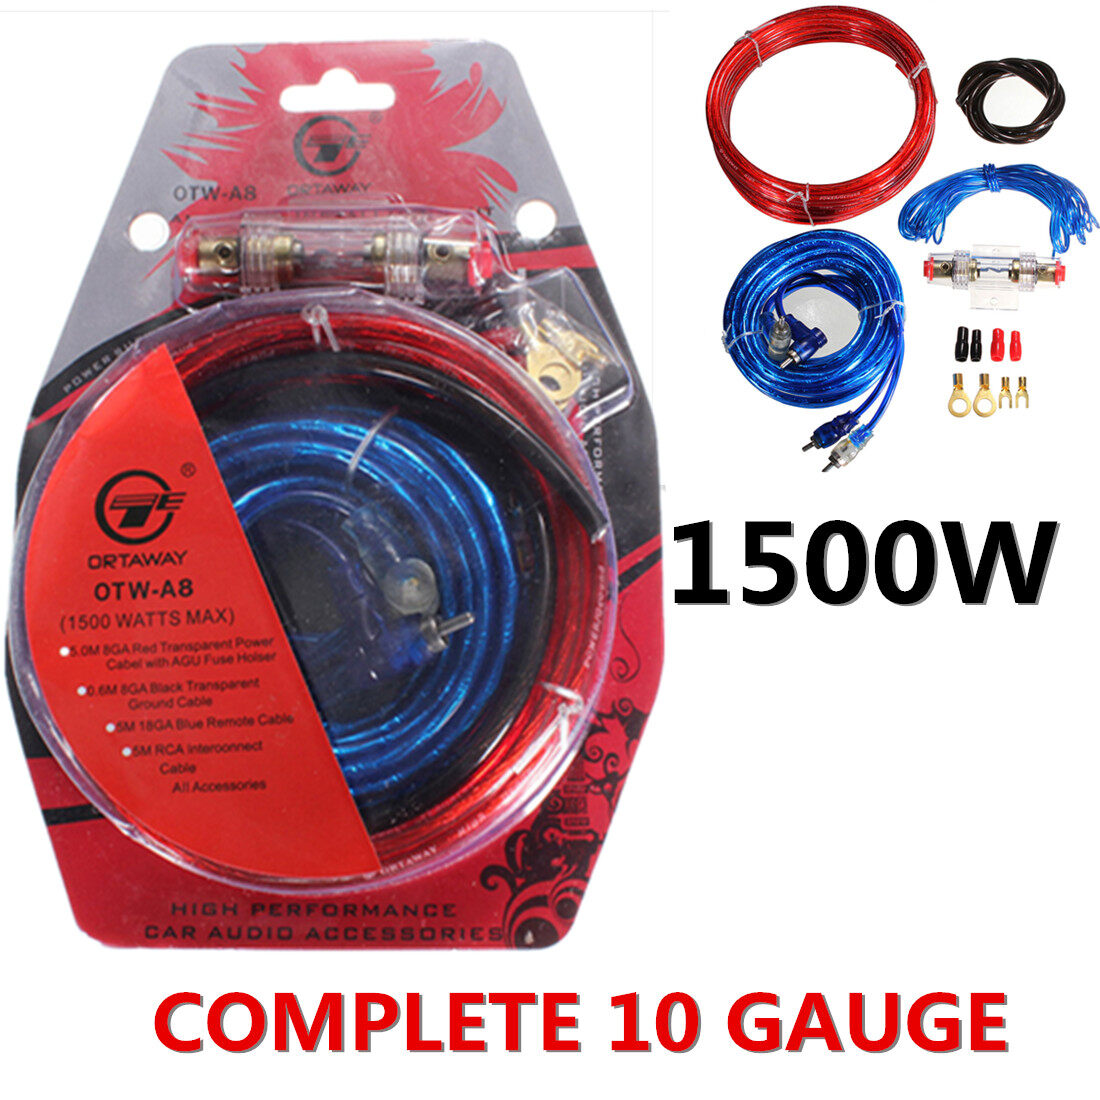 Buy Sell Cheapest 1500w 10 In Best Quality Product Deals Wiring Kits For Car Amps 3 Pcs Complete Gauge Amp Amplifier Cable Speaker Sub Subwoofer Kit